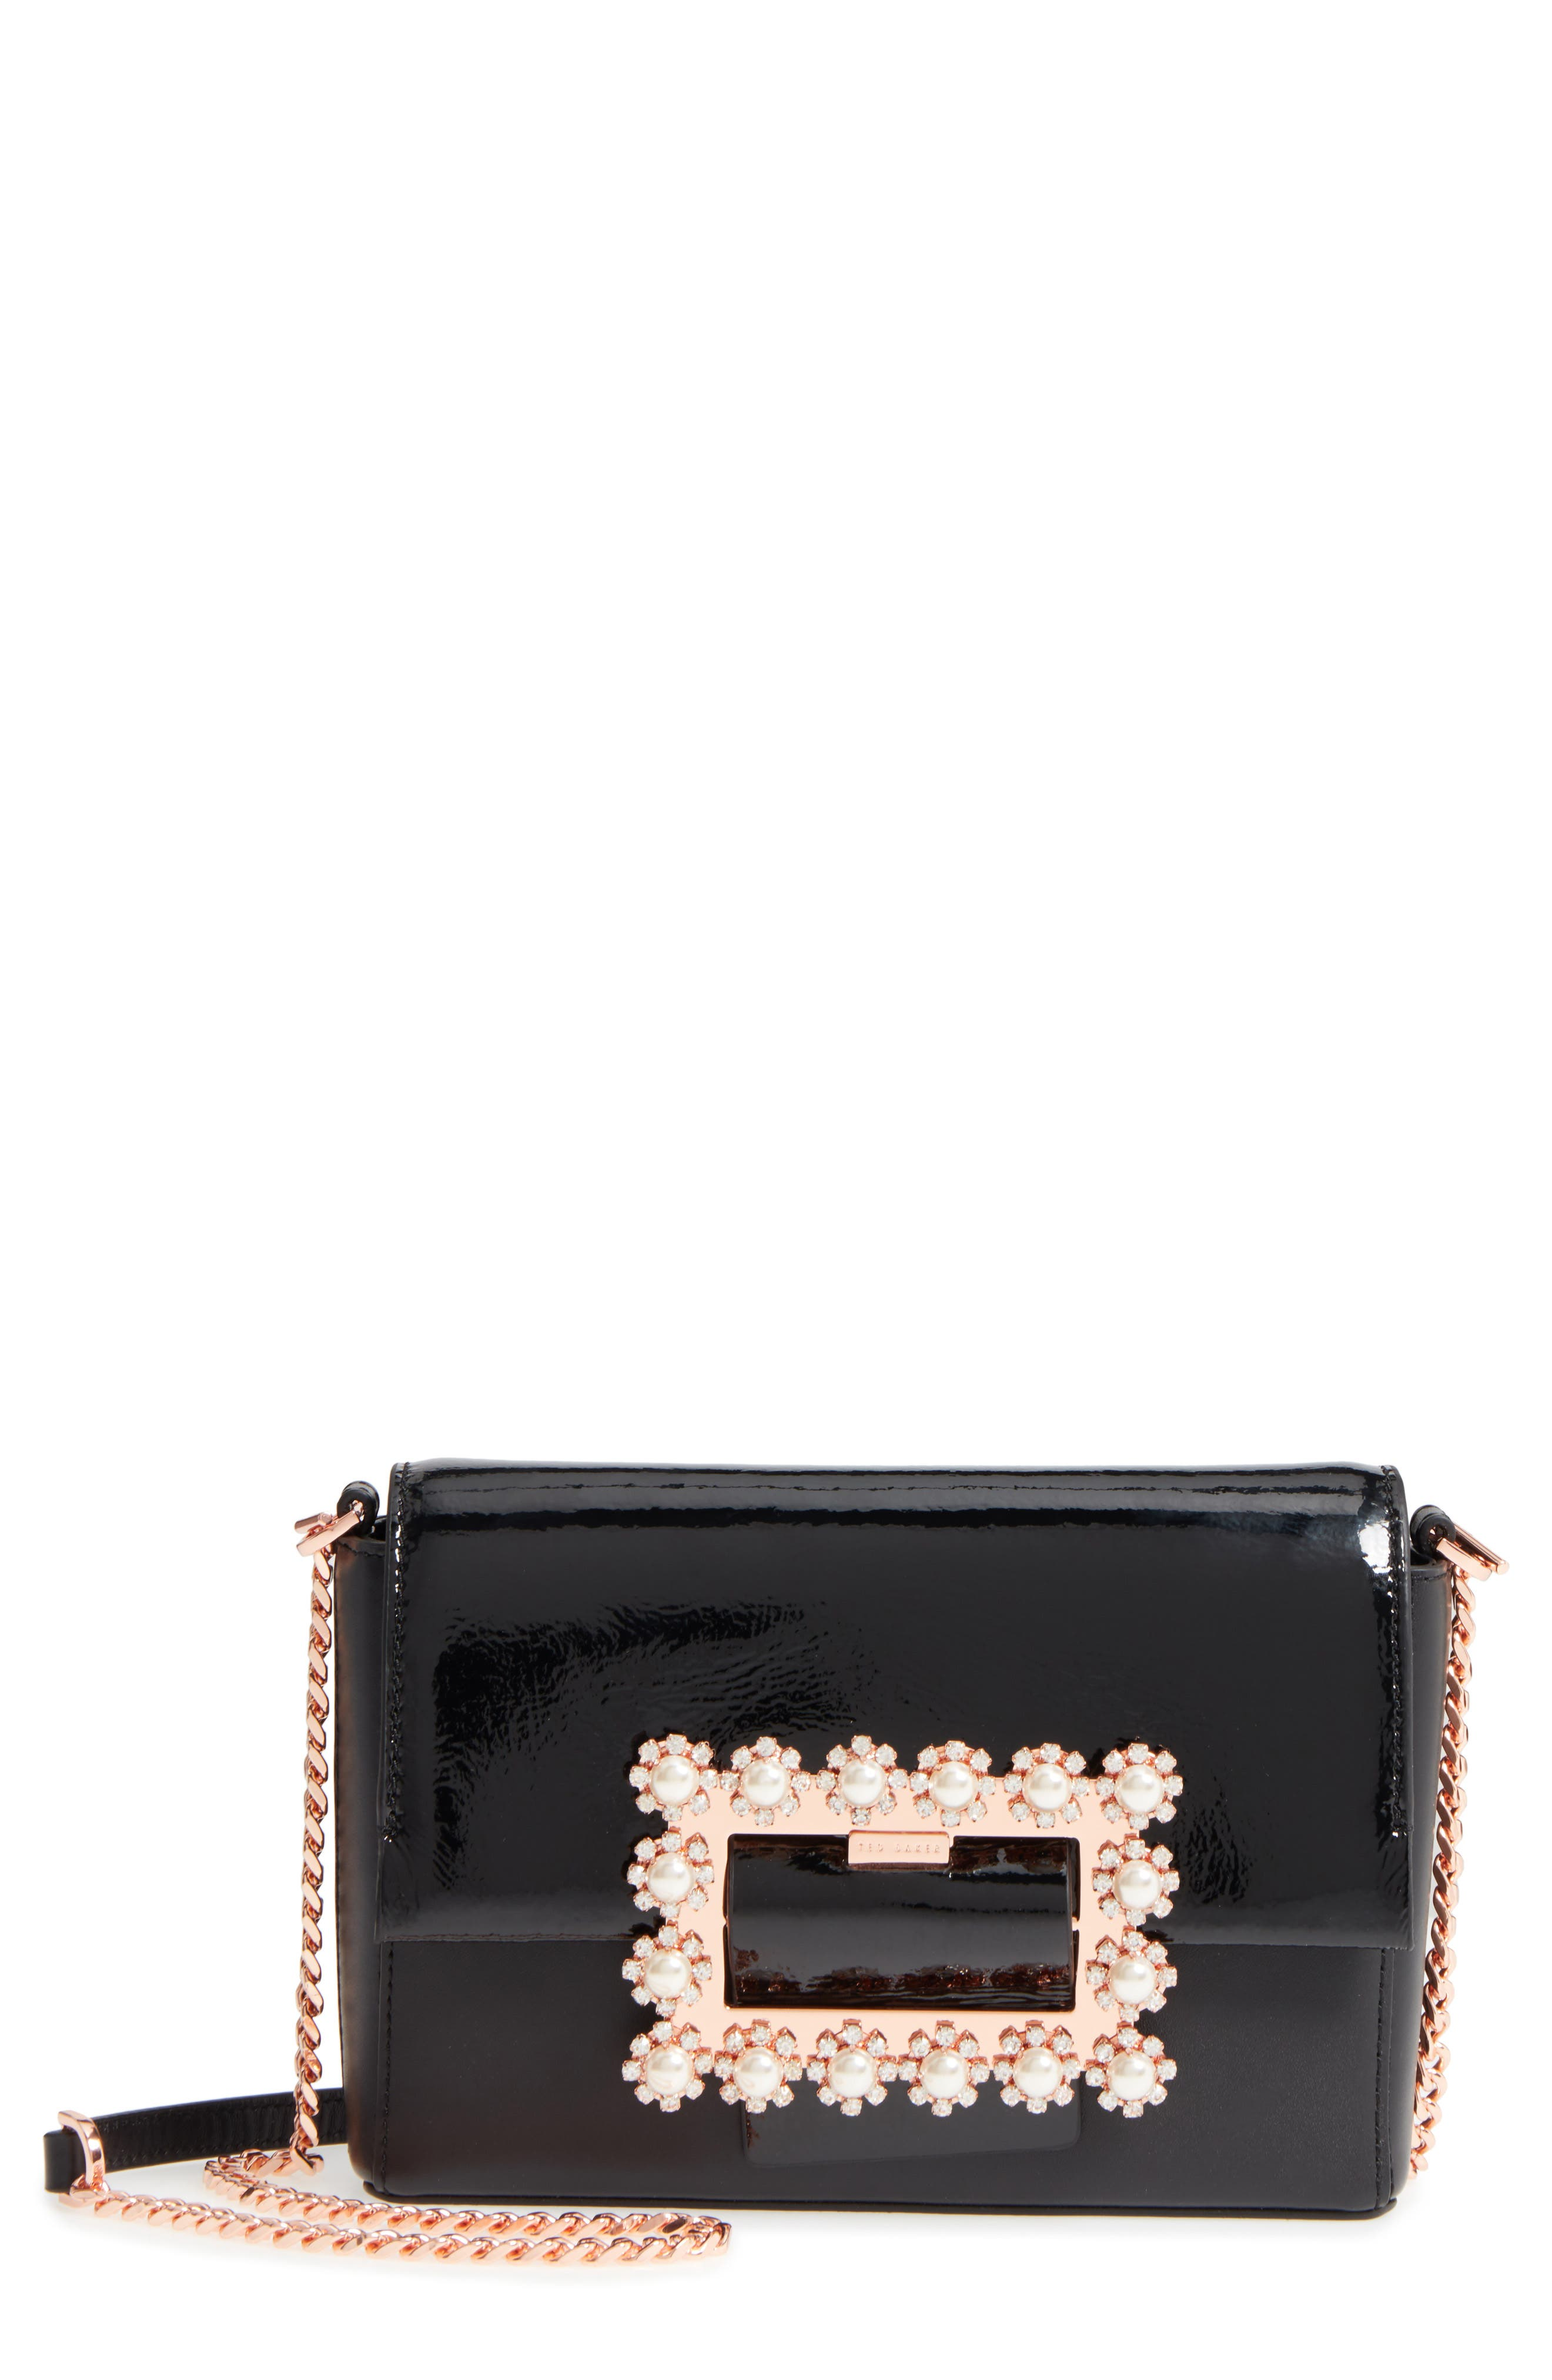 Ted Baker London Peonyy Embellished Buckle Leather Clutch